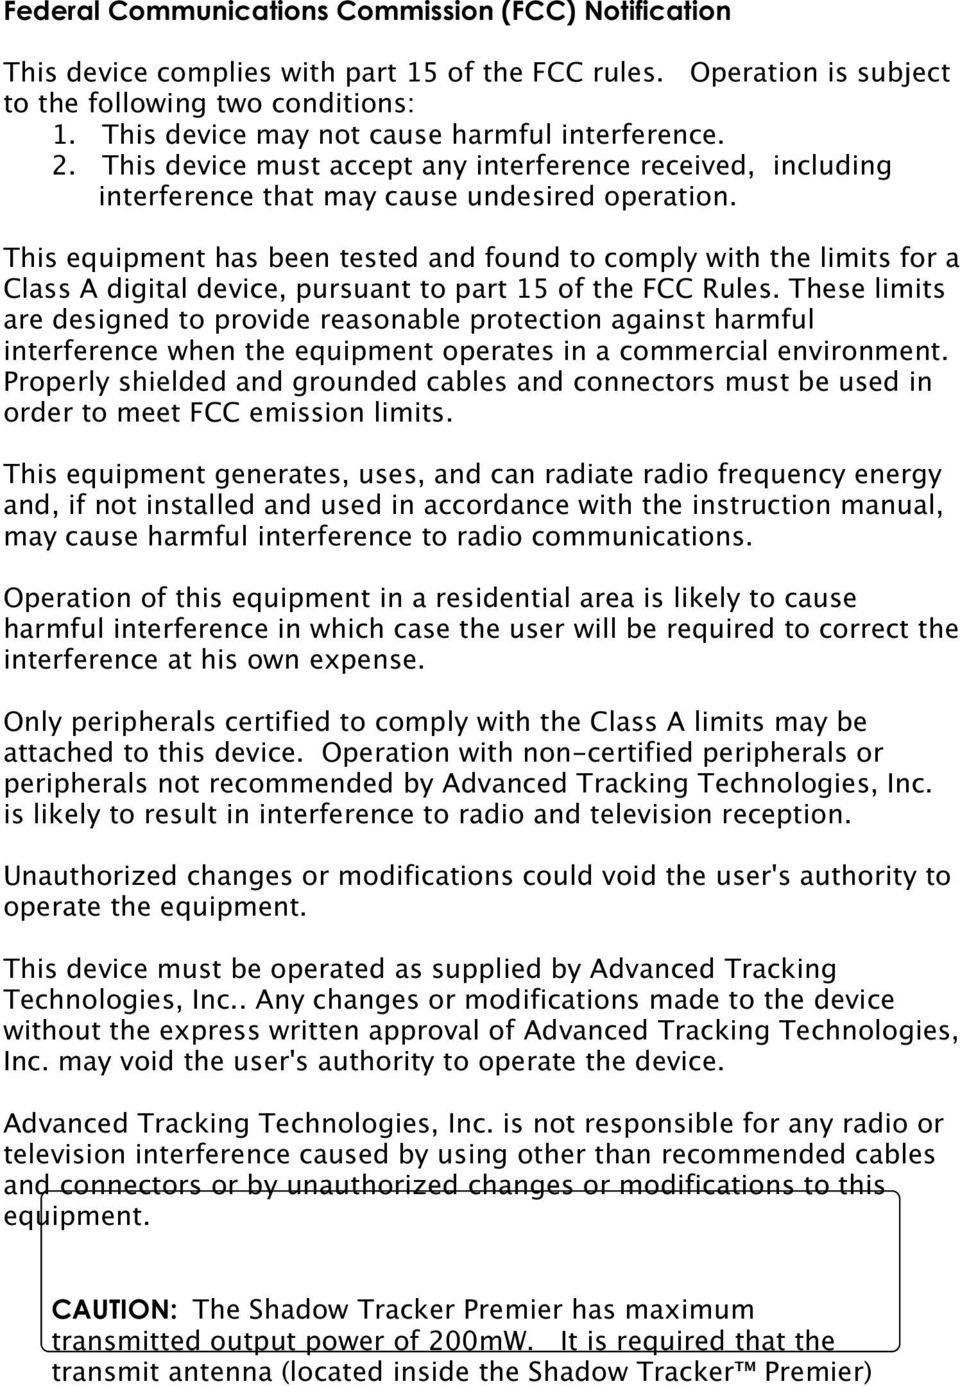 This equipment has been tested and found to comply with the limits for a Class A digital device, pursuant to part 15 of the FCC Rules.